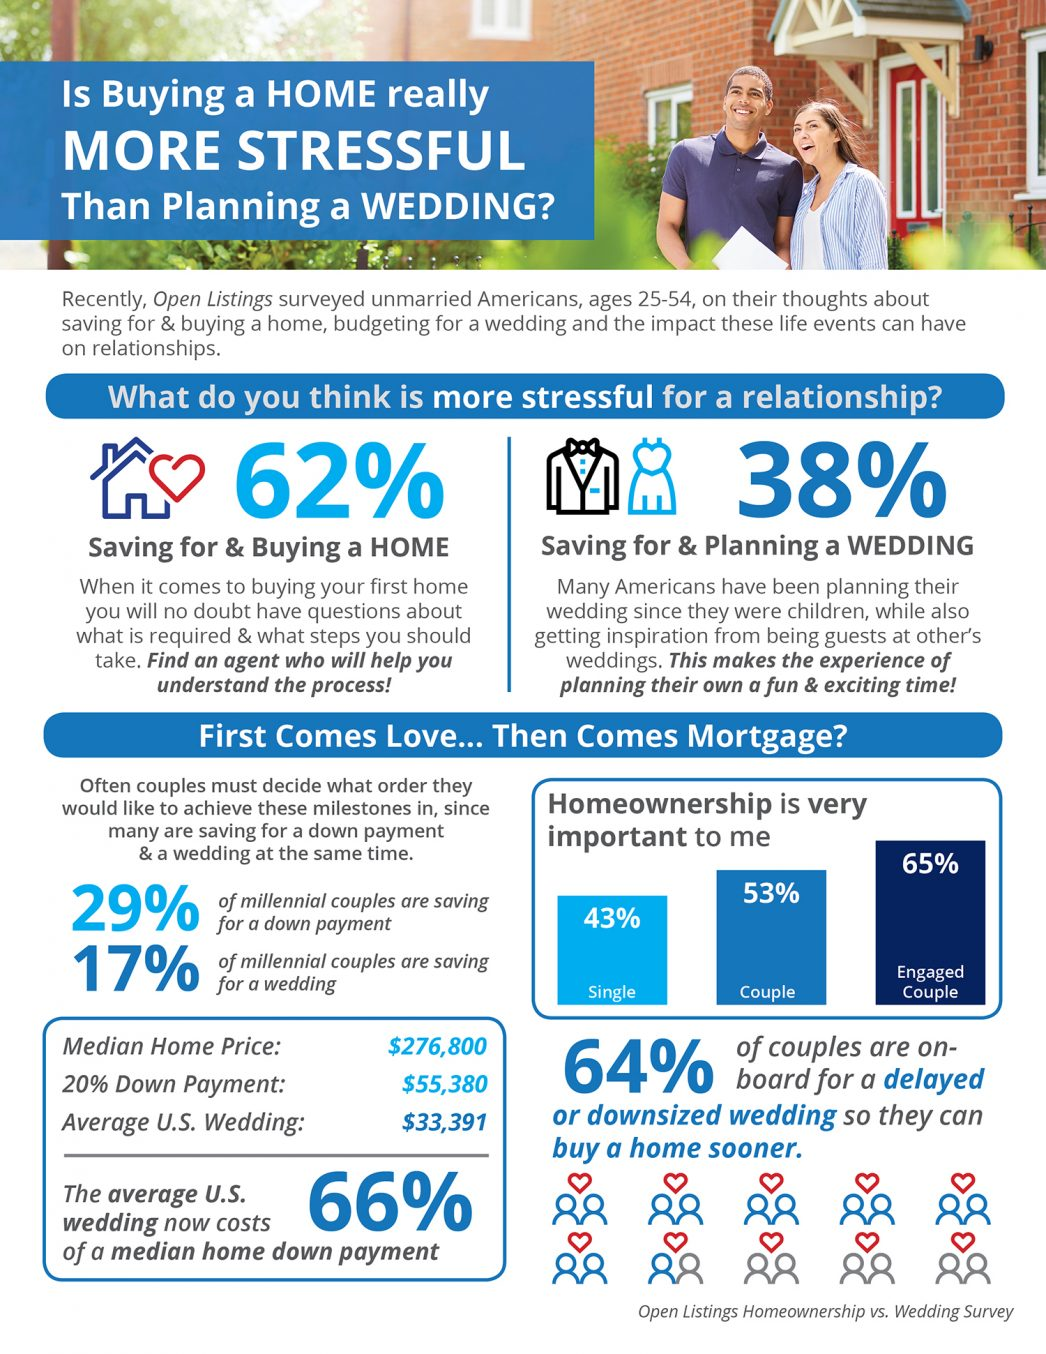 Is Buying a Home Really More Stressful Than Planning a Wedding? [INFOGRAPHIC] | MyKCM